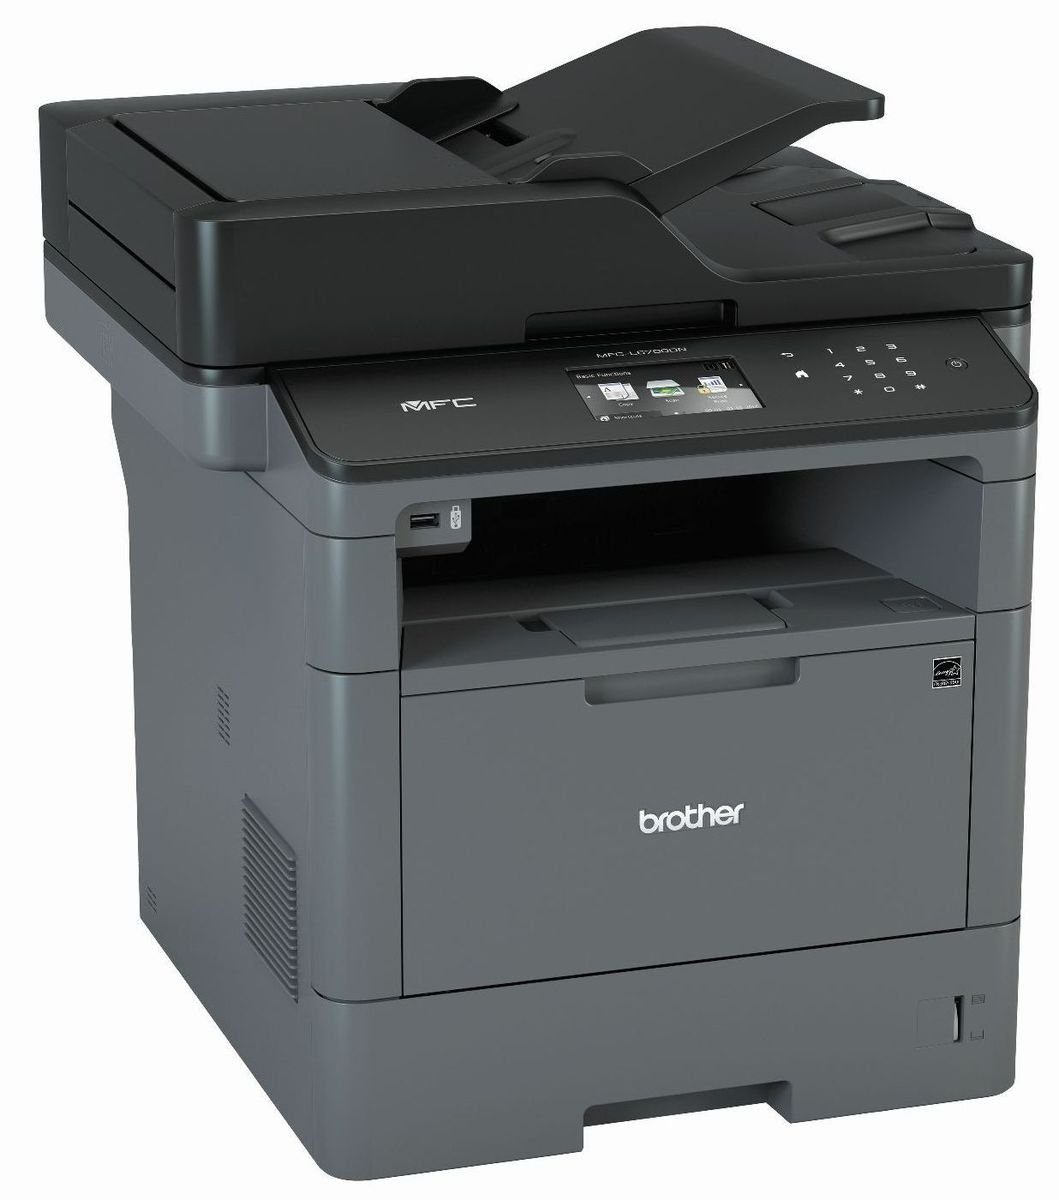 Brother Monolaser-Multifunktionsdrucker »MFC-L5700DN 4in1 Multifunktionsdrucker«